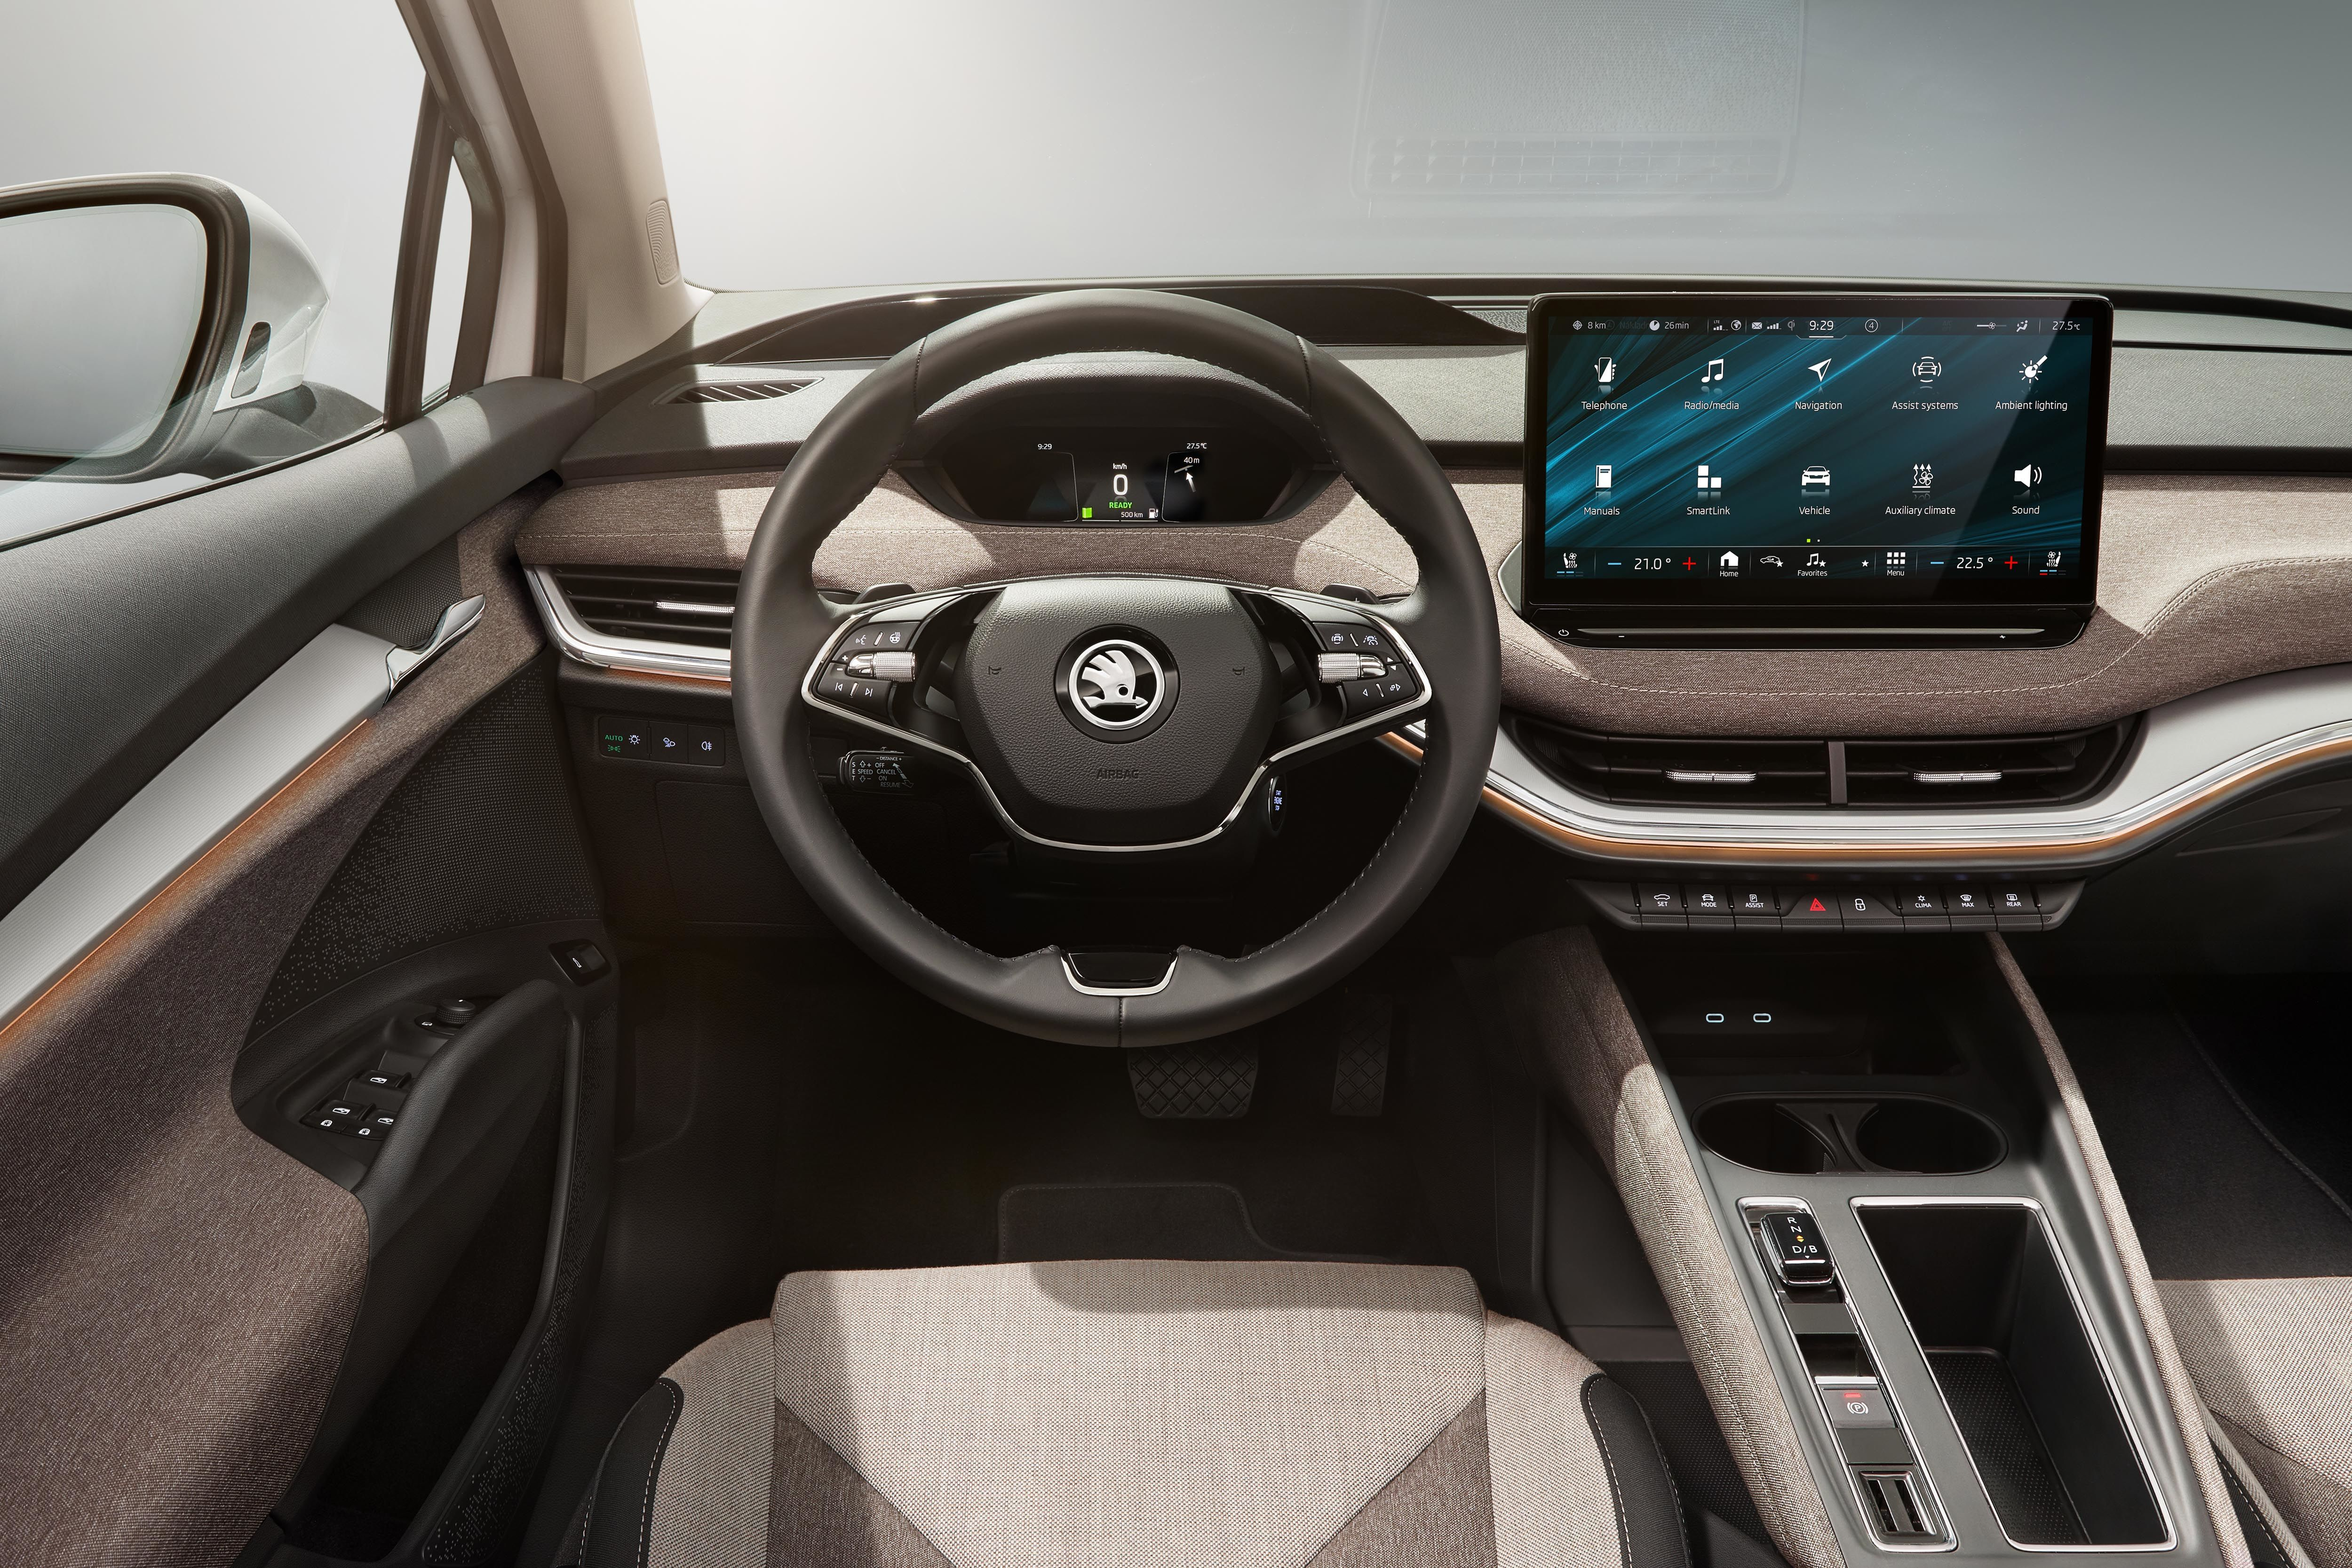 The SUV has a spacious passenger compartment. The horizontally developed dashboard is characterised by the presence of the large 13-inch infotainment display.